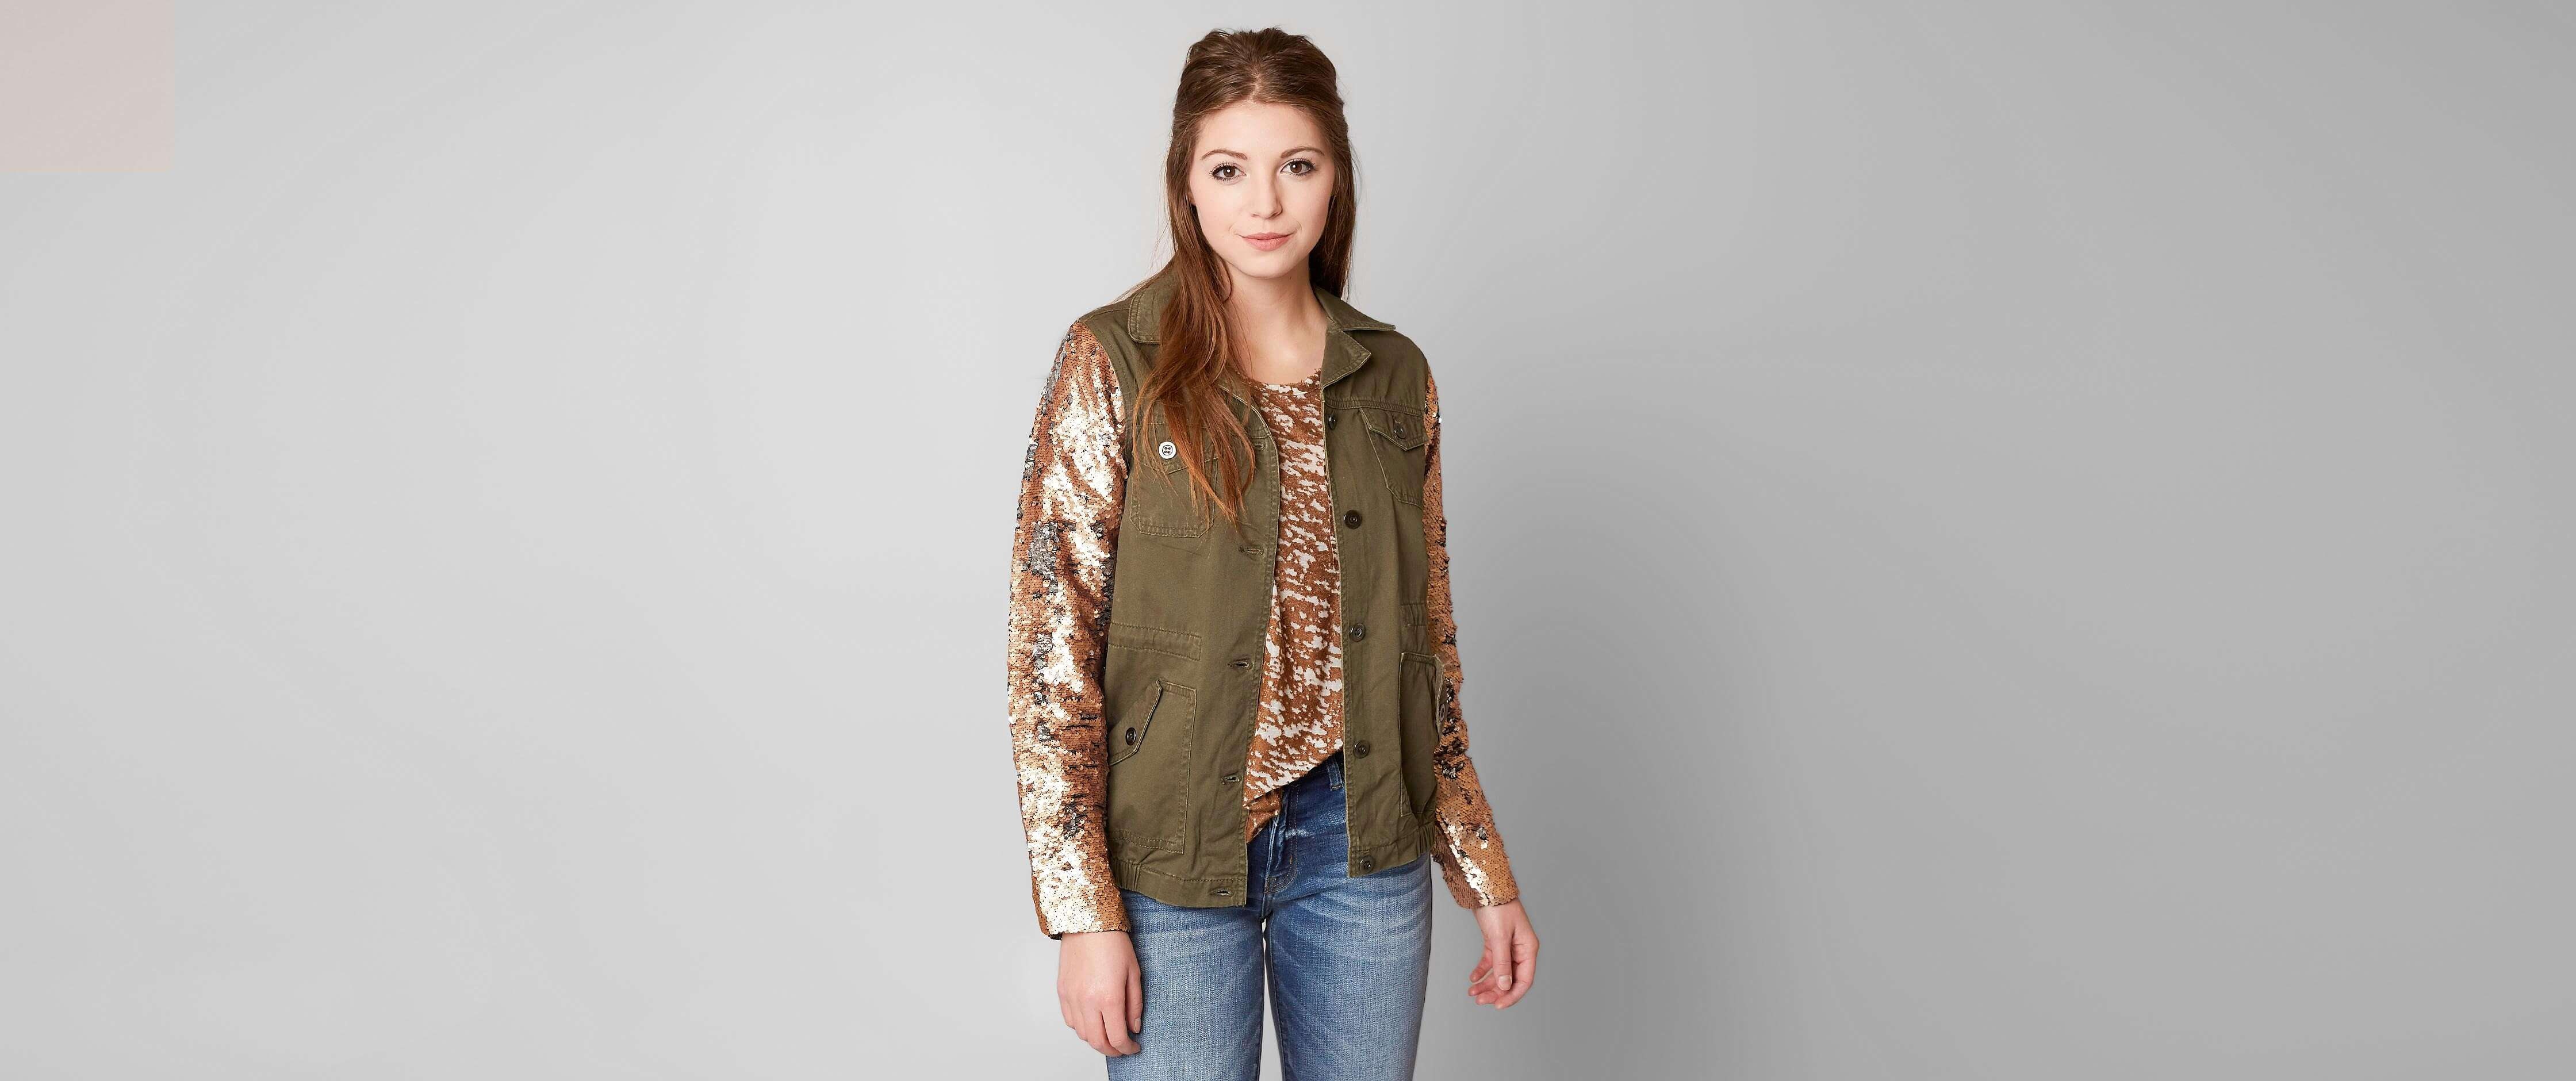 bd43c5ee4d BKE Canvas Jacket at Buckle in Monroeville